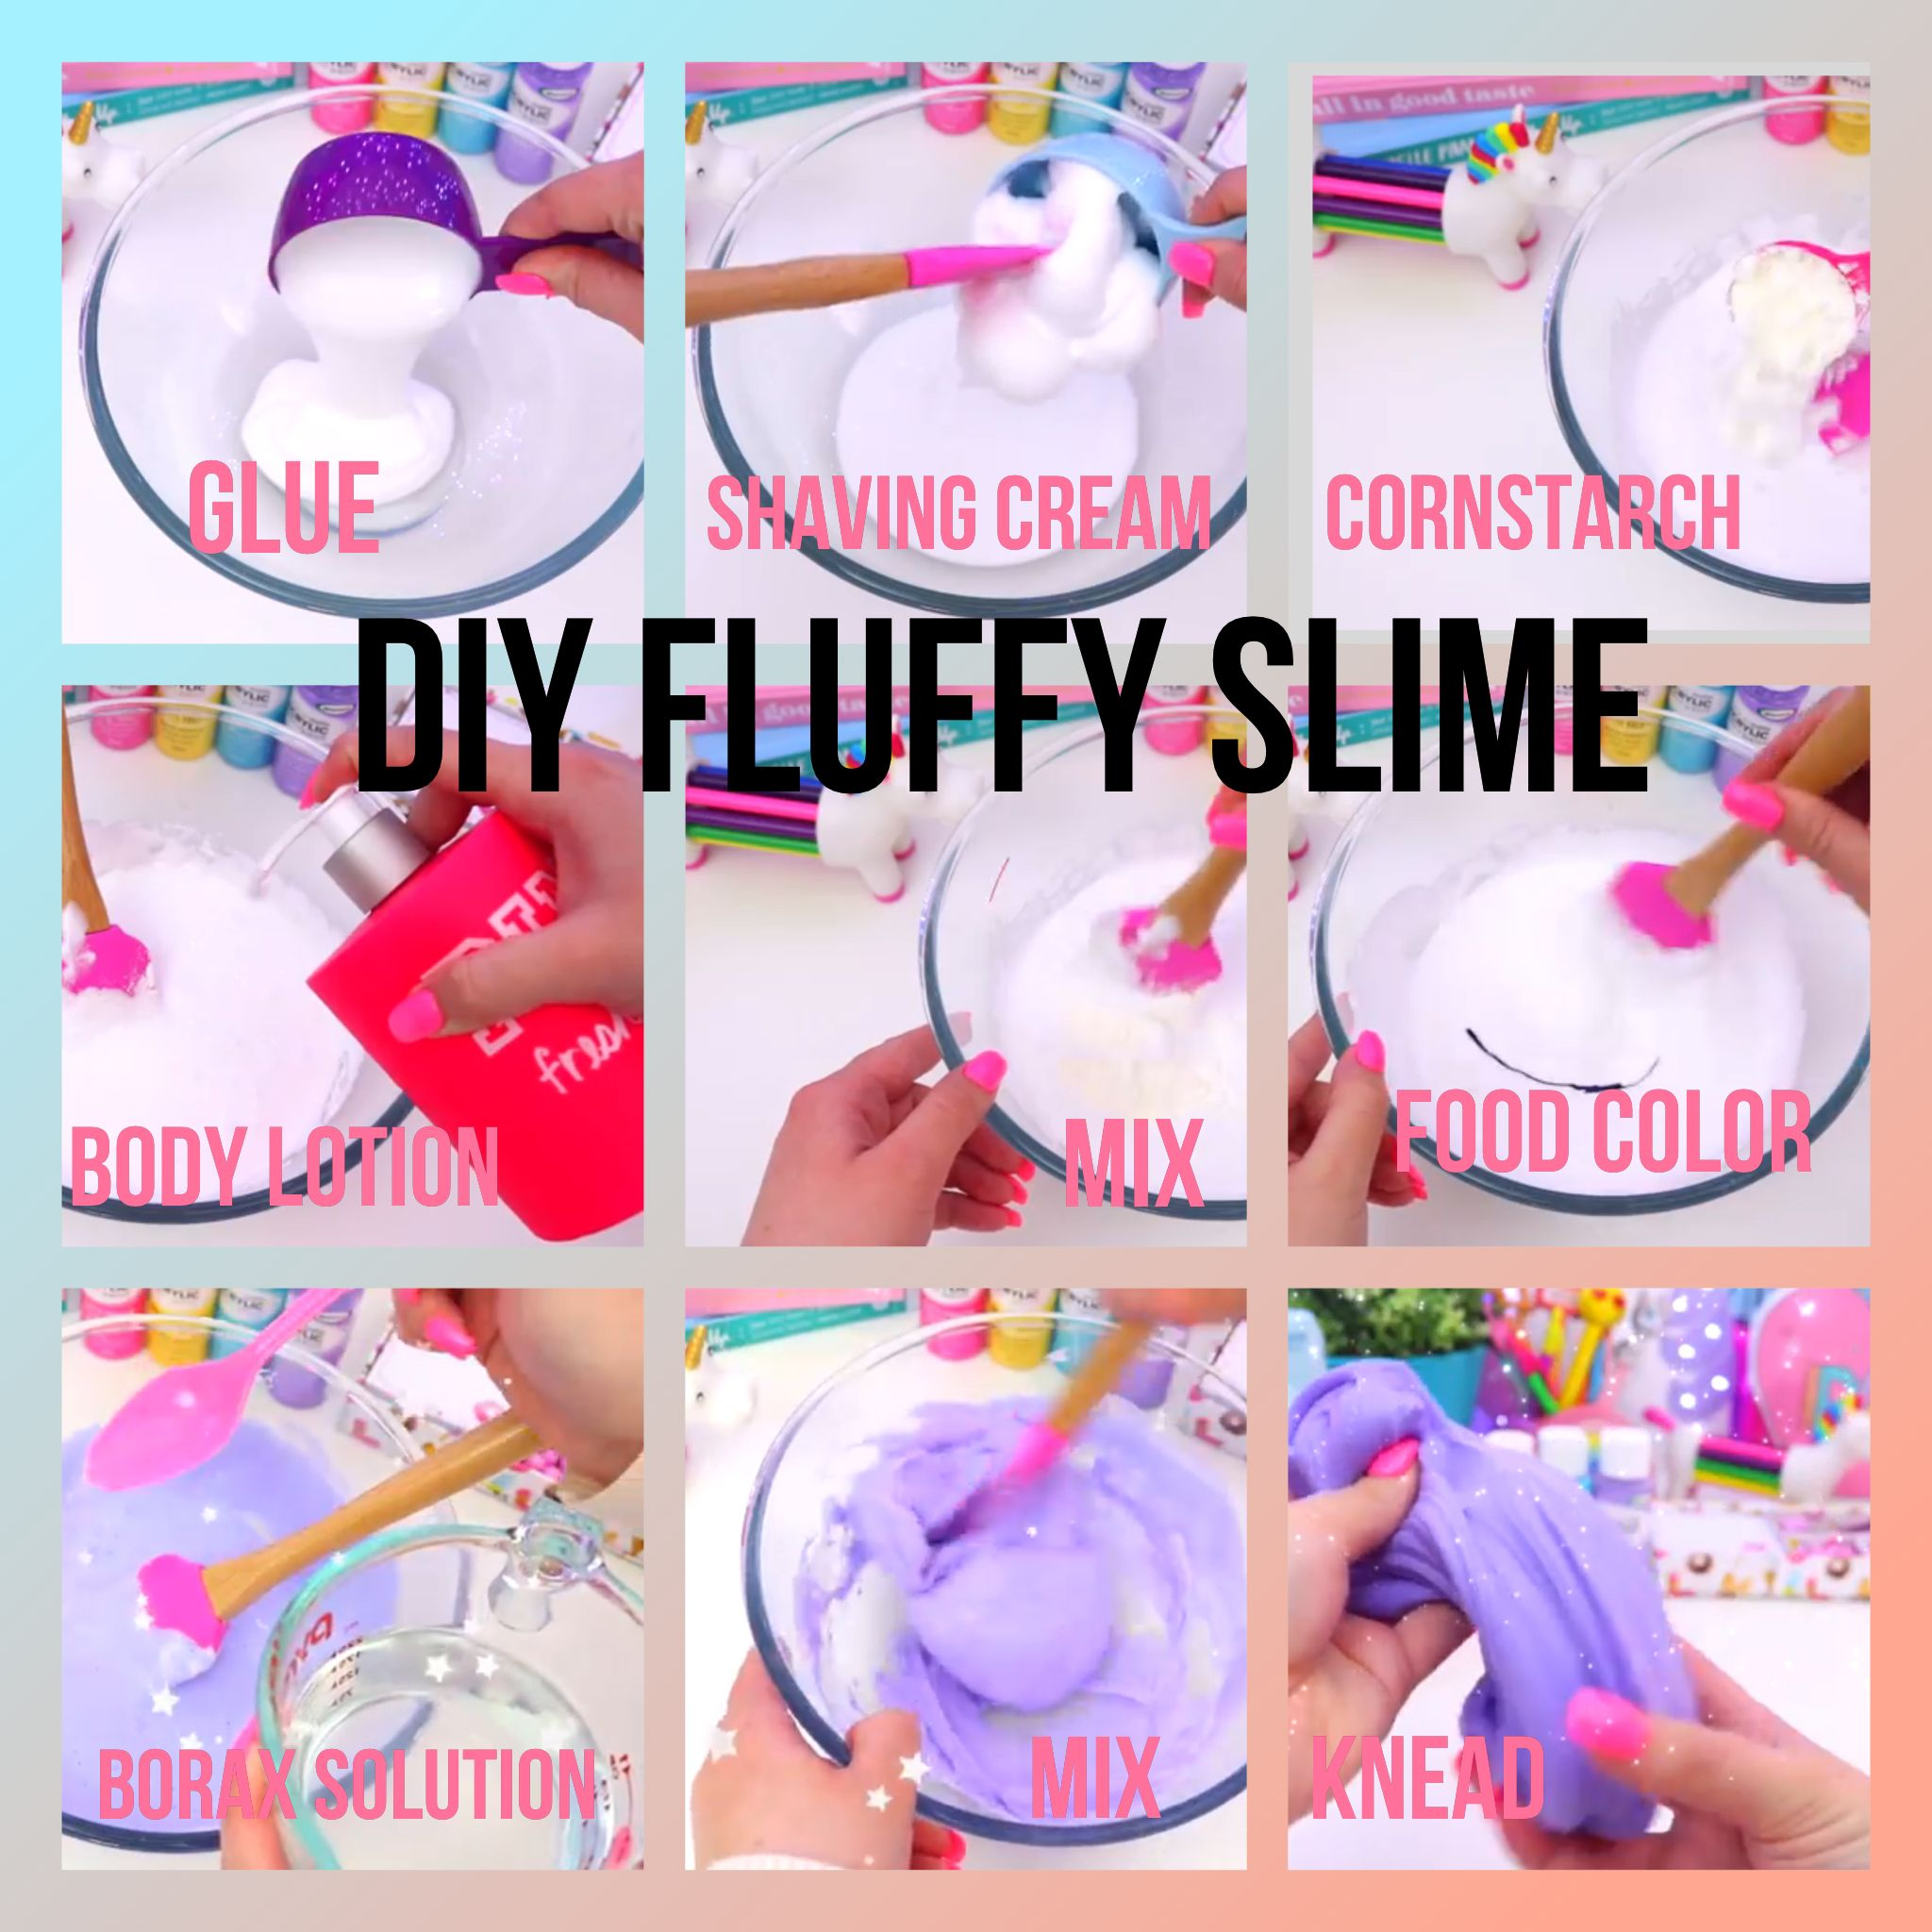 Diy Fluffy Slime By Gillian Bower On Youtube @gillian_bower On Instagram!  Pin Edited